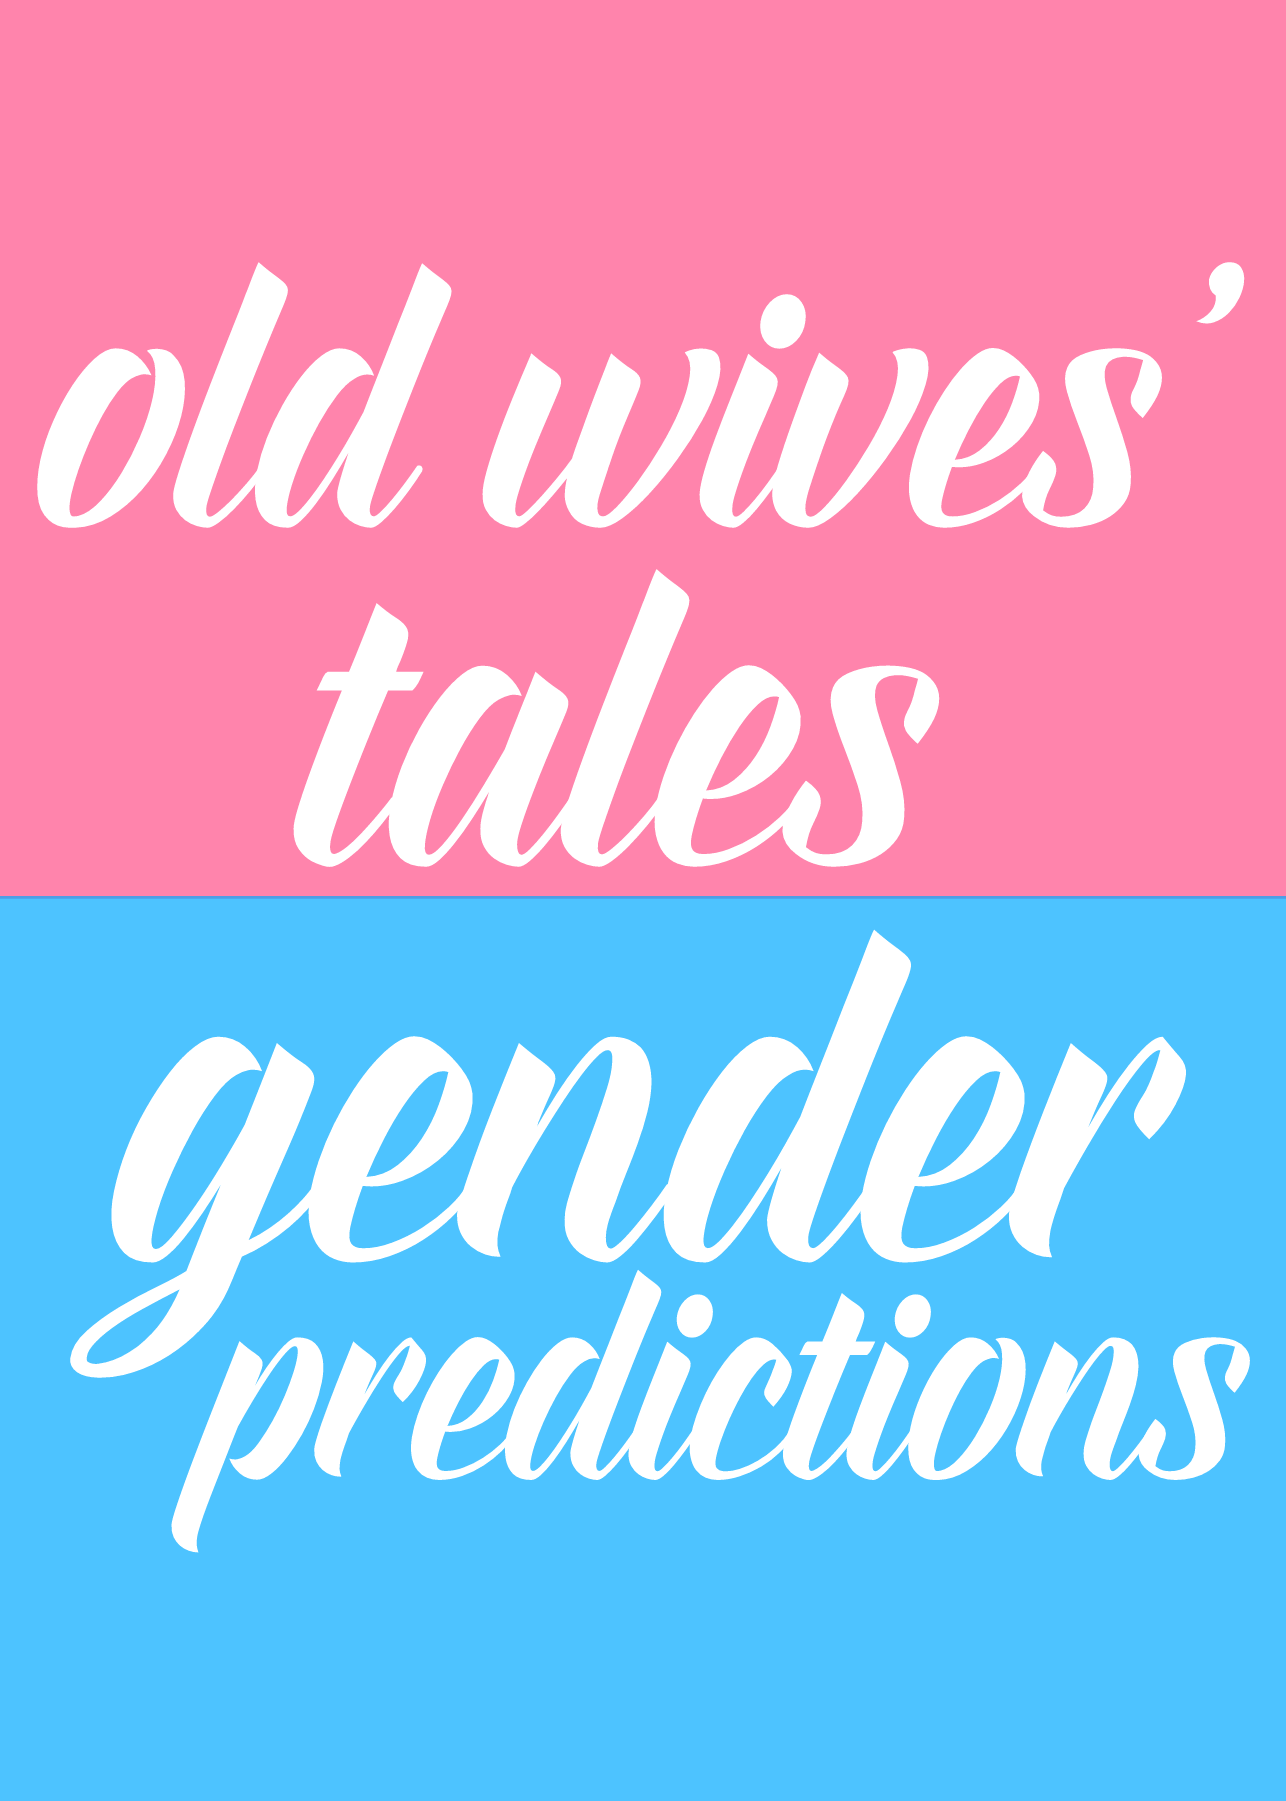 7 old wives tales gender predictions gender prediction wives old wives tales gender predictions chinese birth calendar list of gender predictions nvjuhfo Gallery